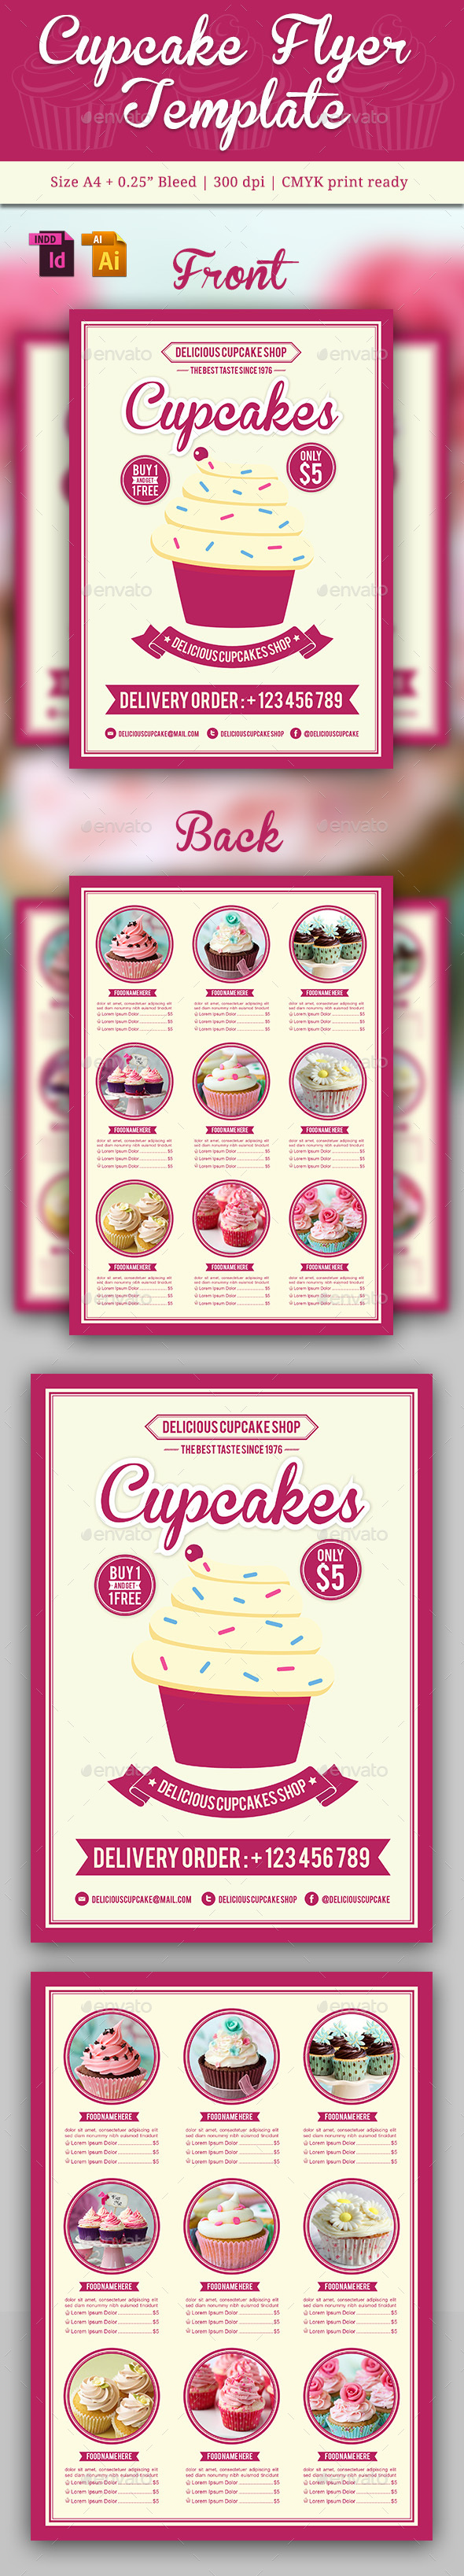 Cupcake Flyer Template Vol. 3